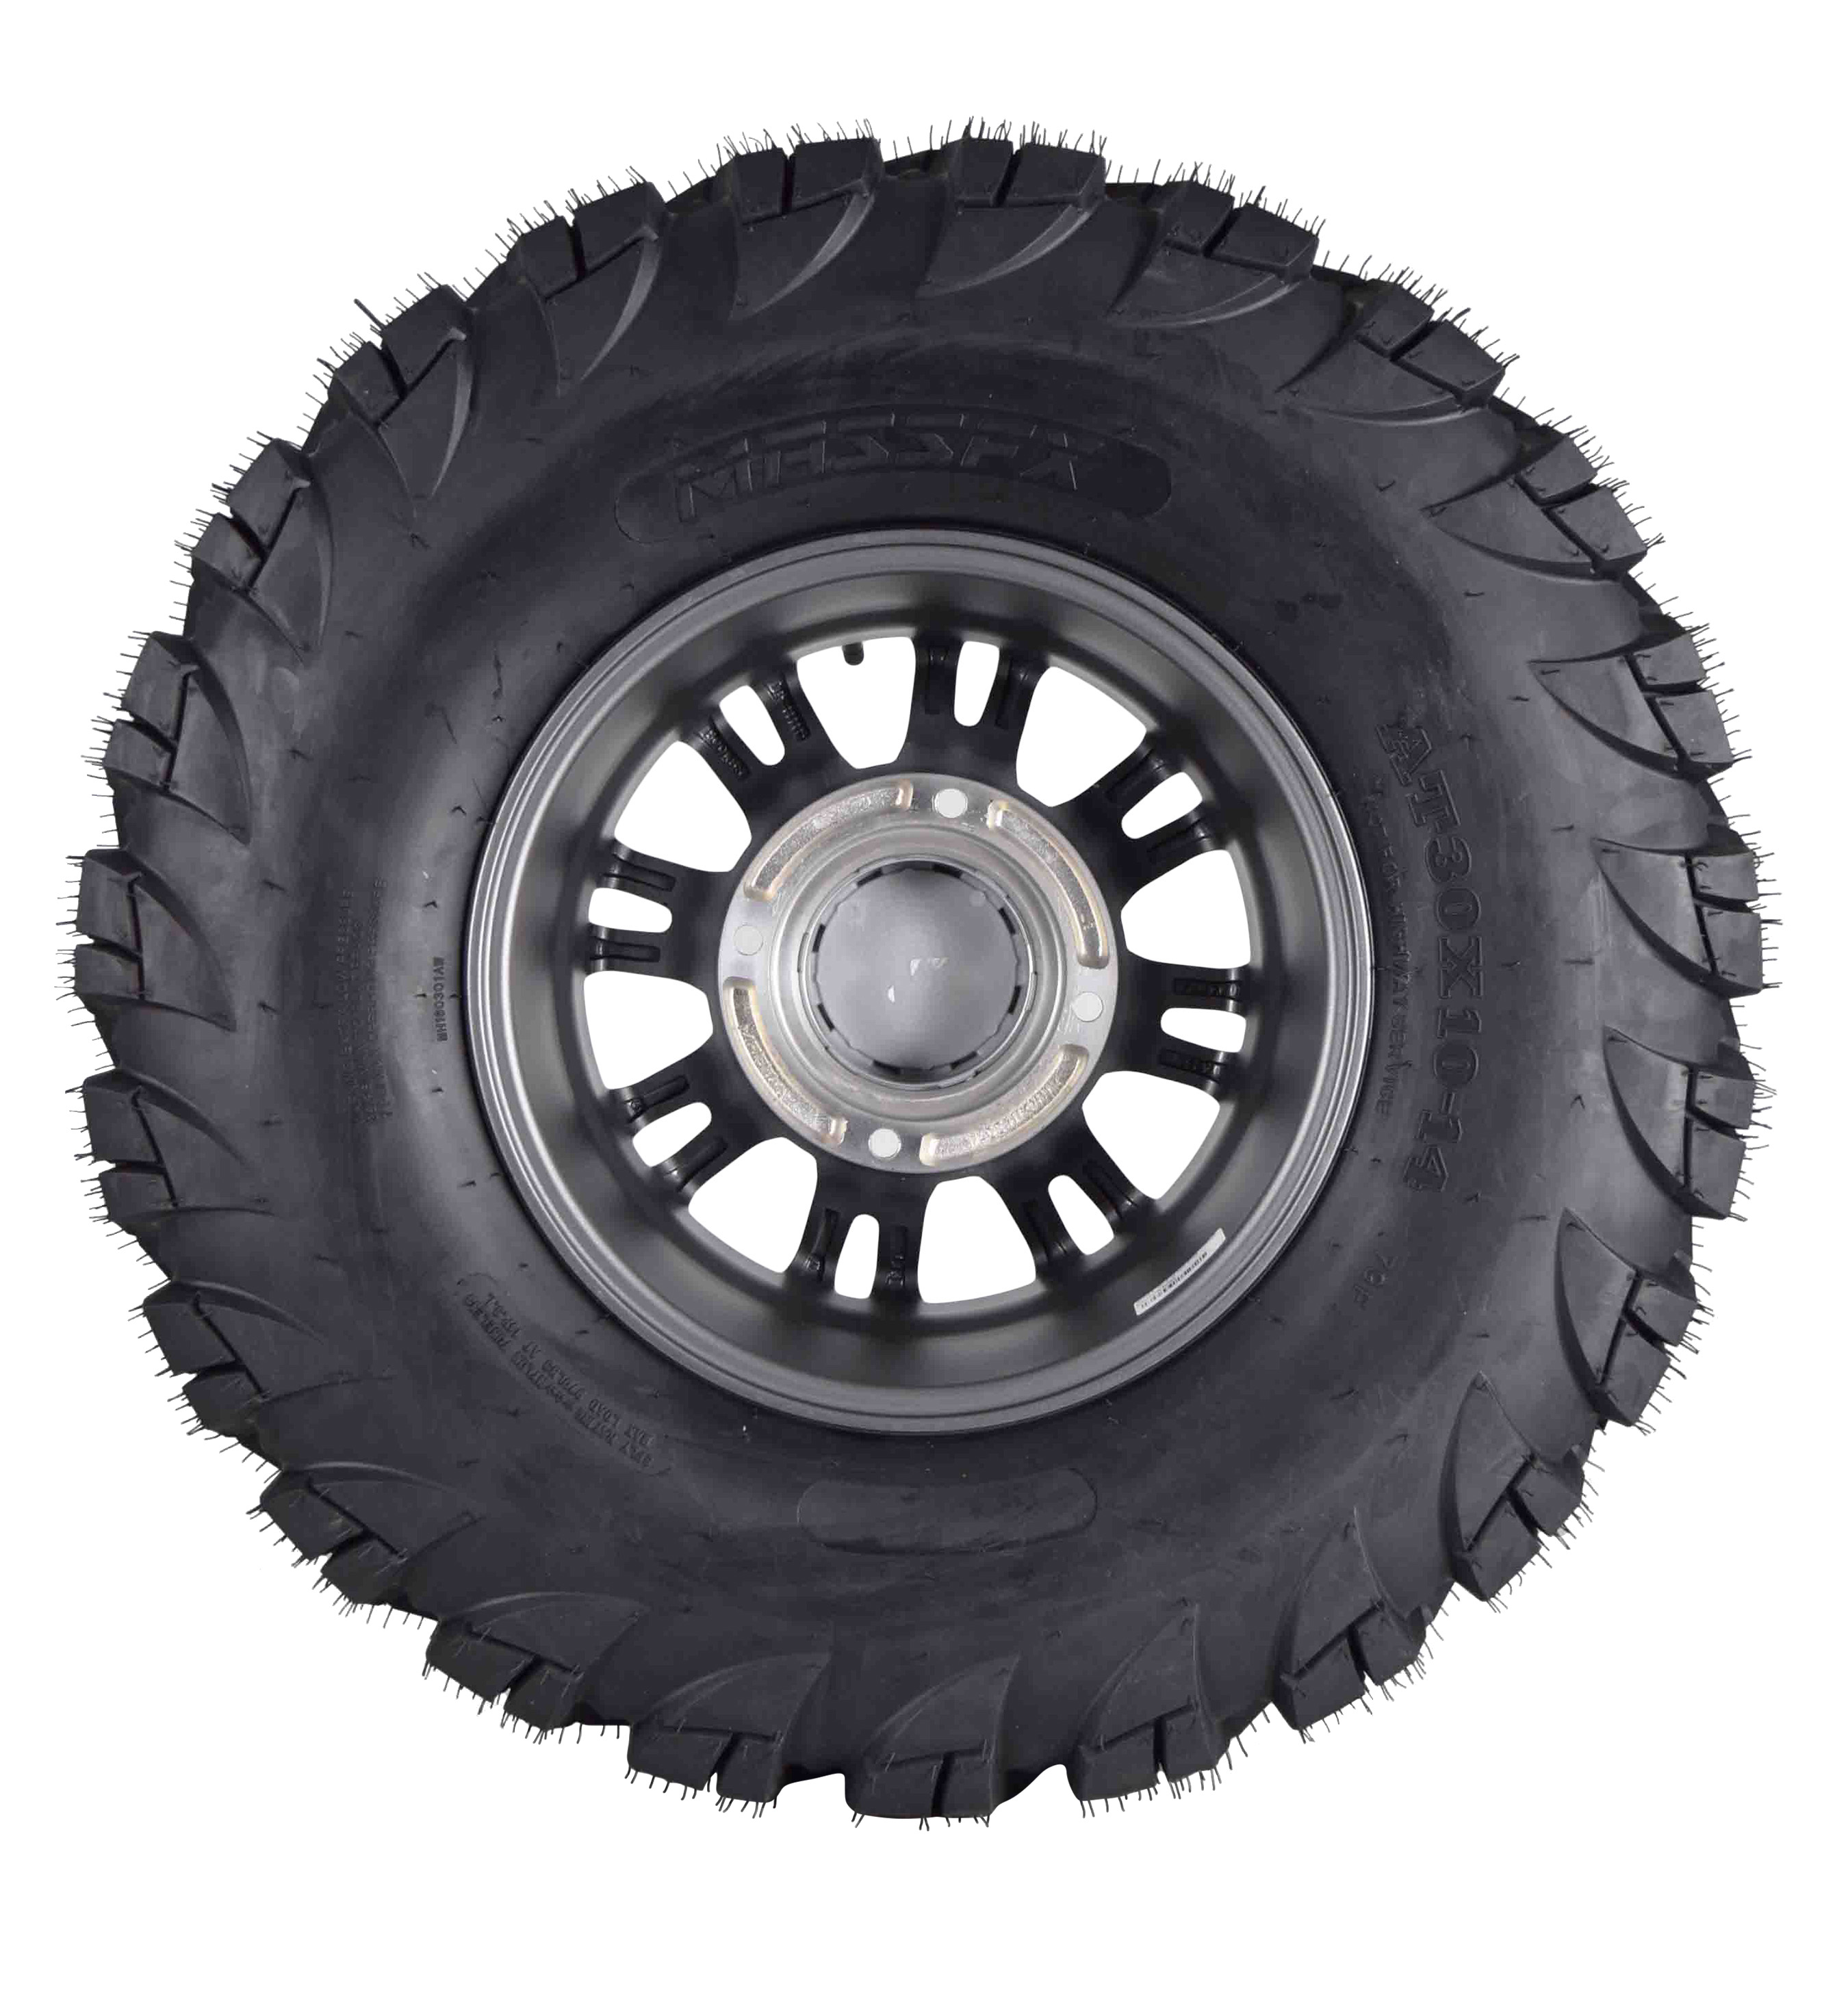 MASSFX-VY-30x10-14-Tire-w-Gunmetal-14x7-4-156-Rims-Wheel-Tire-Kit-with-Spare-image-4